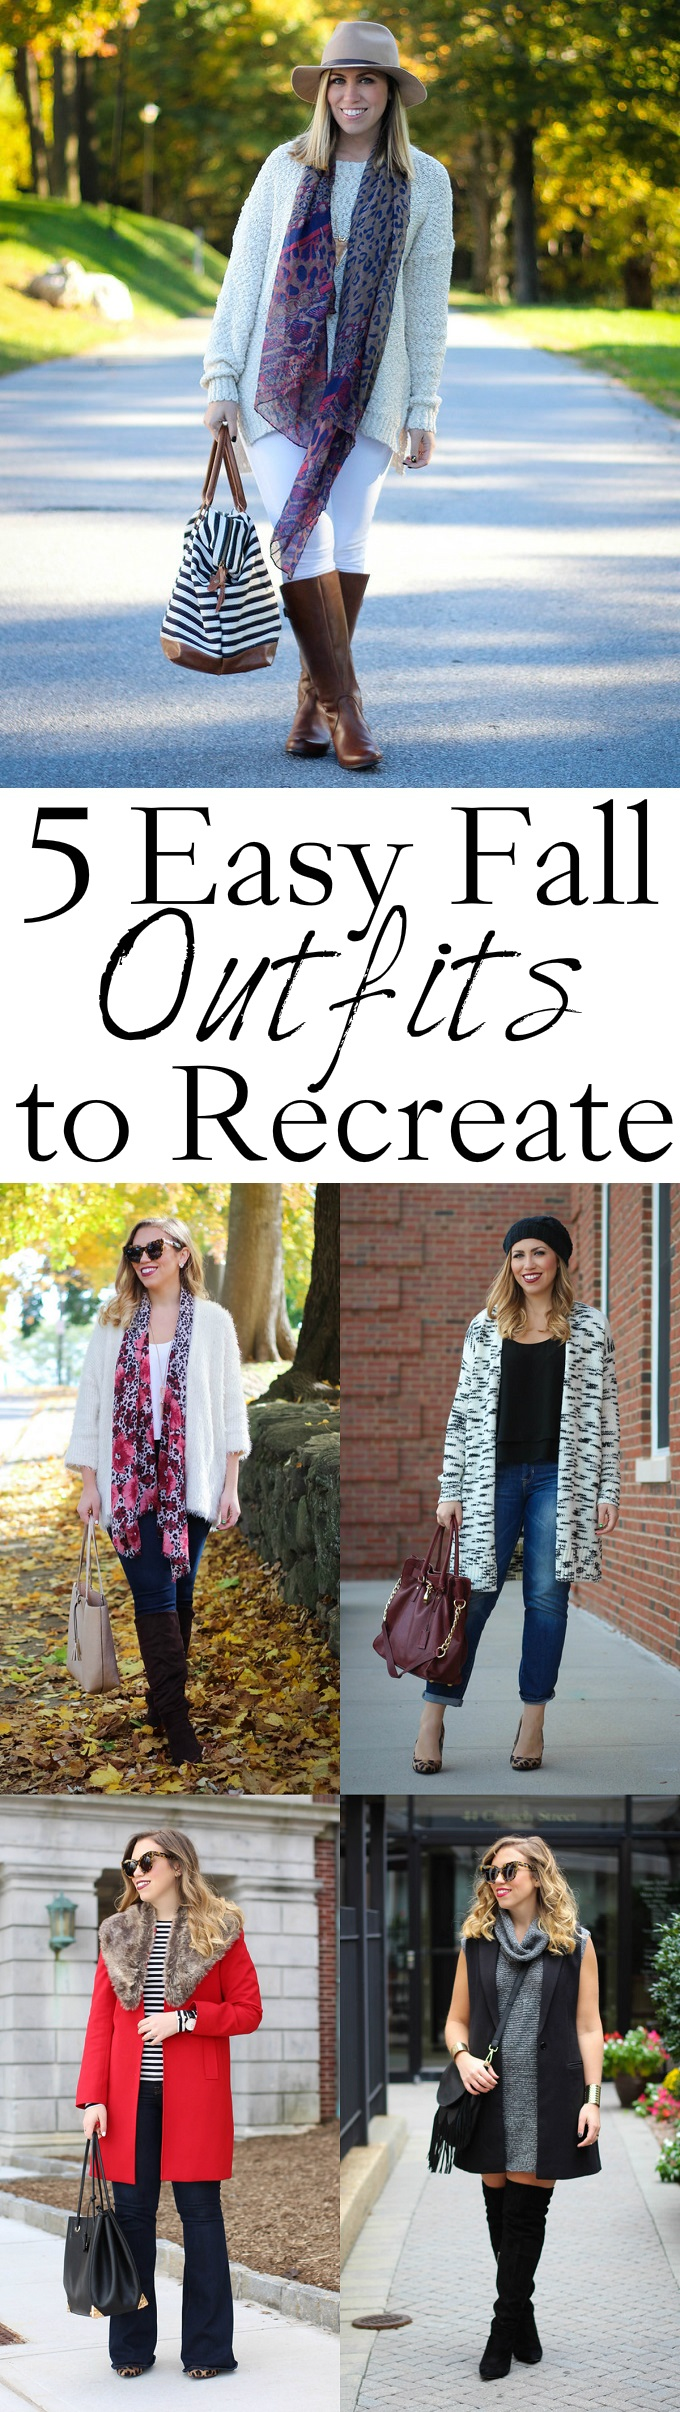 5 Easy Fall Outfits to Recreate